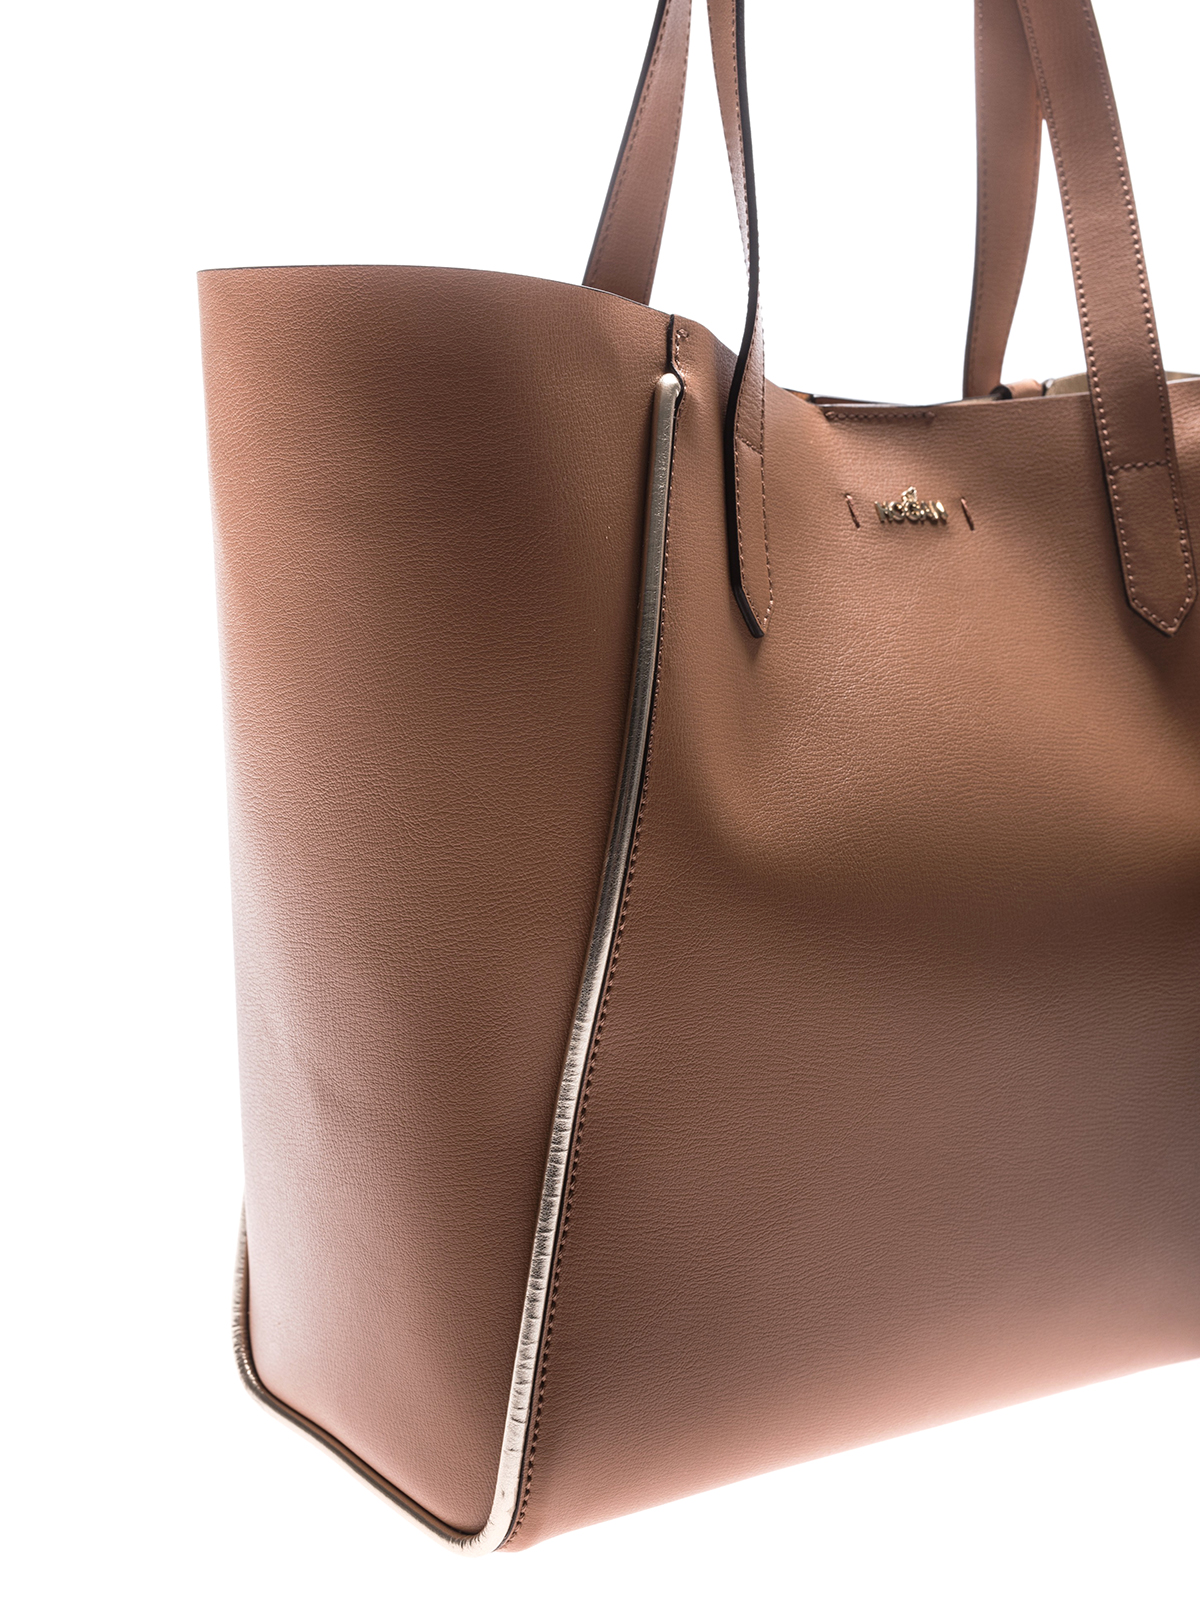 Hogan - Light brown leather shopping bag - totes bags ... d76af872fec